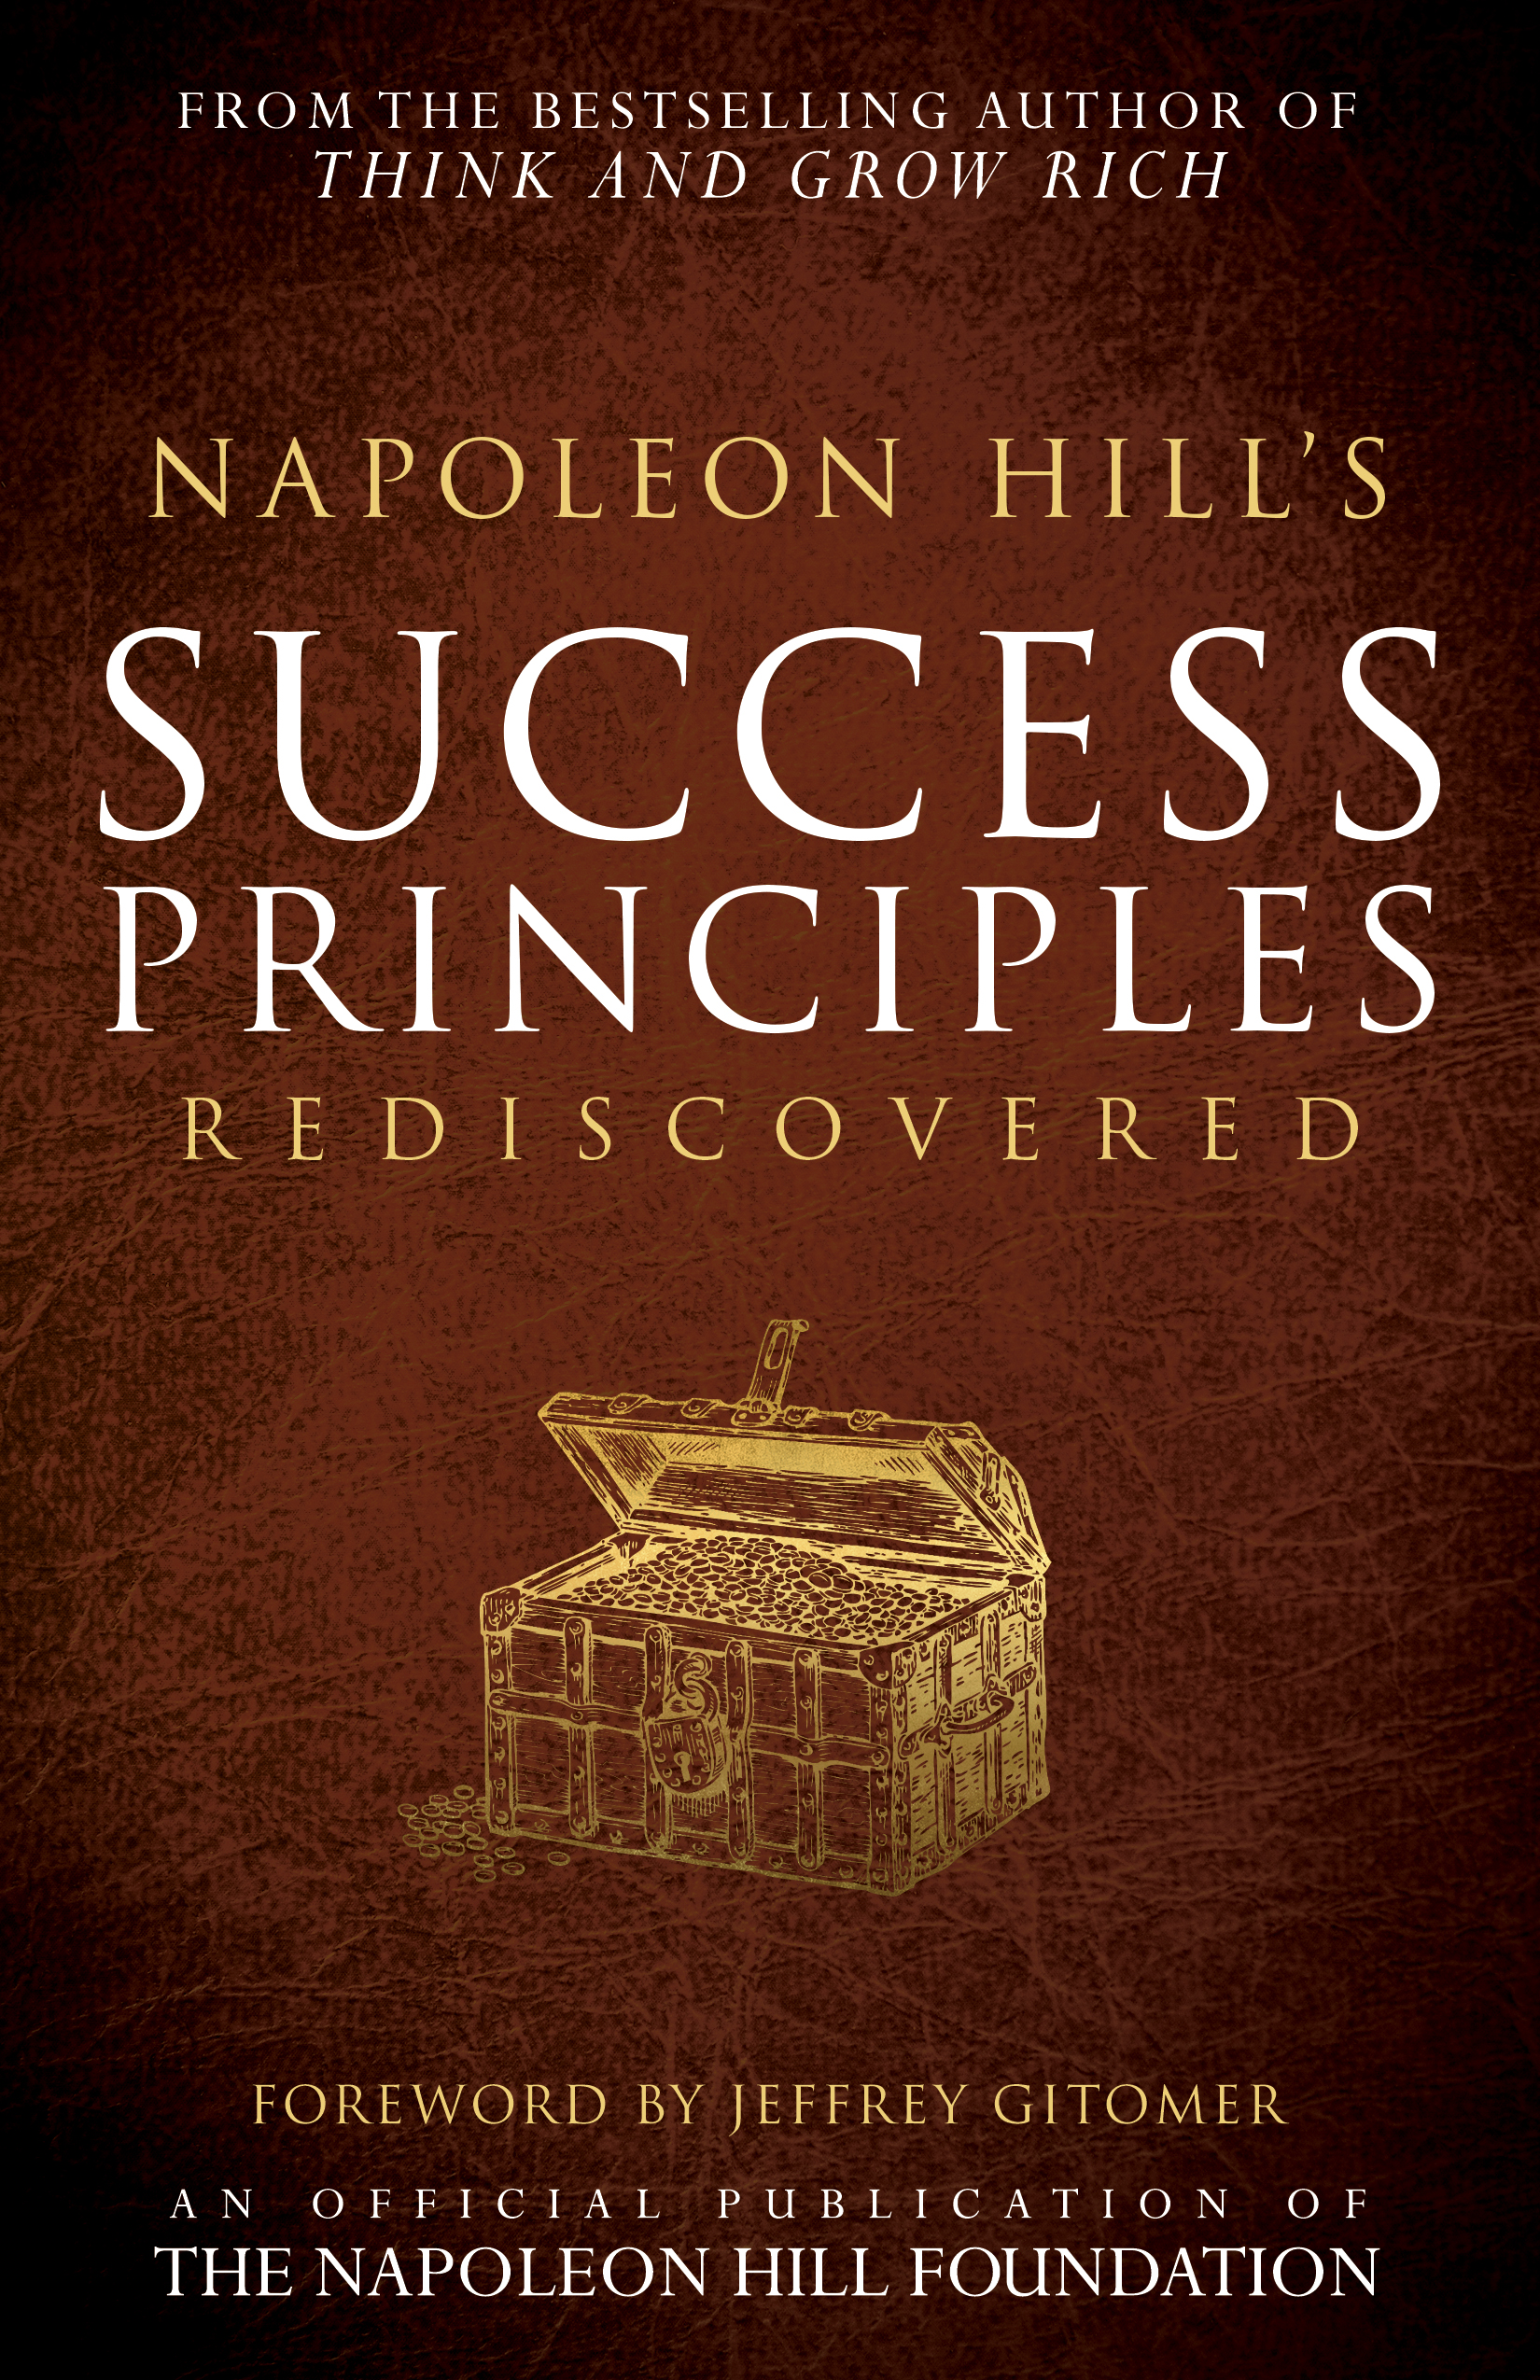 Napoleon Hill's Success Principles Rediscovered - By napoleon hill